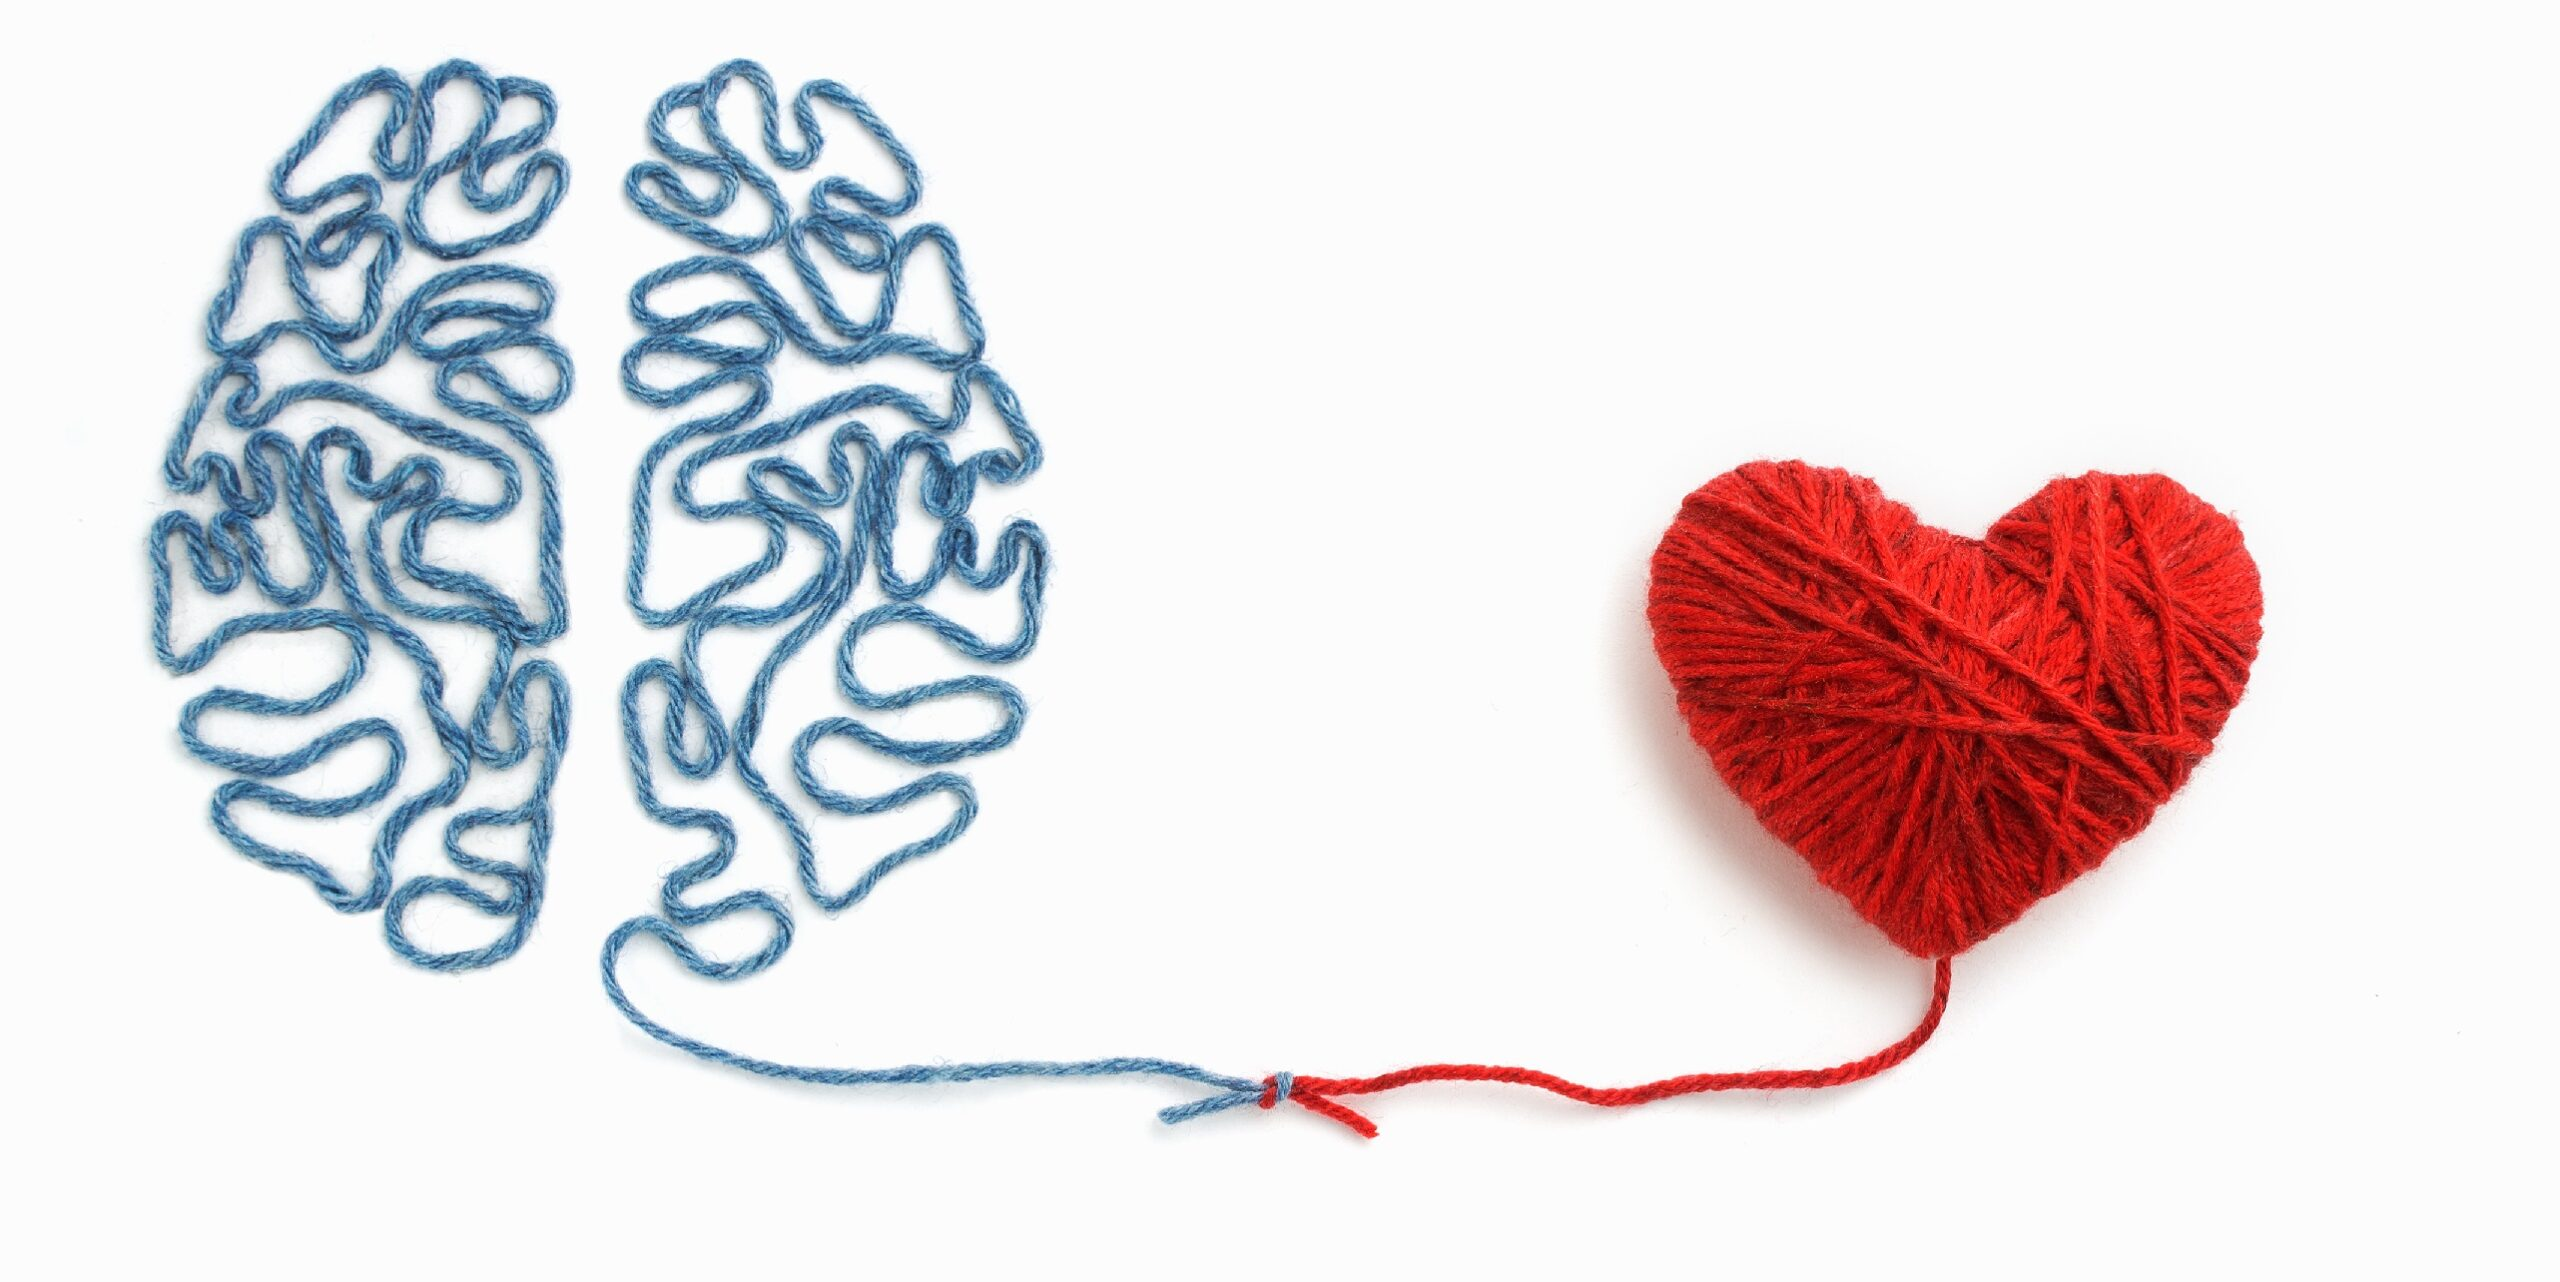 Heart weakness damages the brain - the decoding mechanism - the healing practice